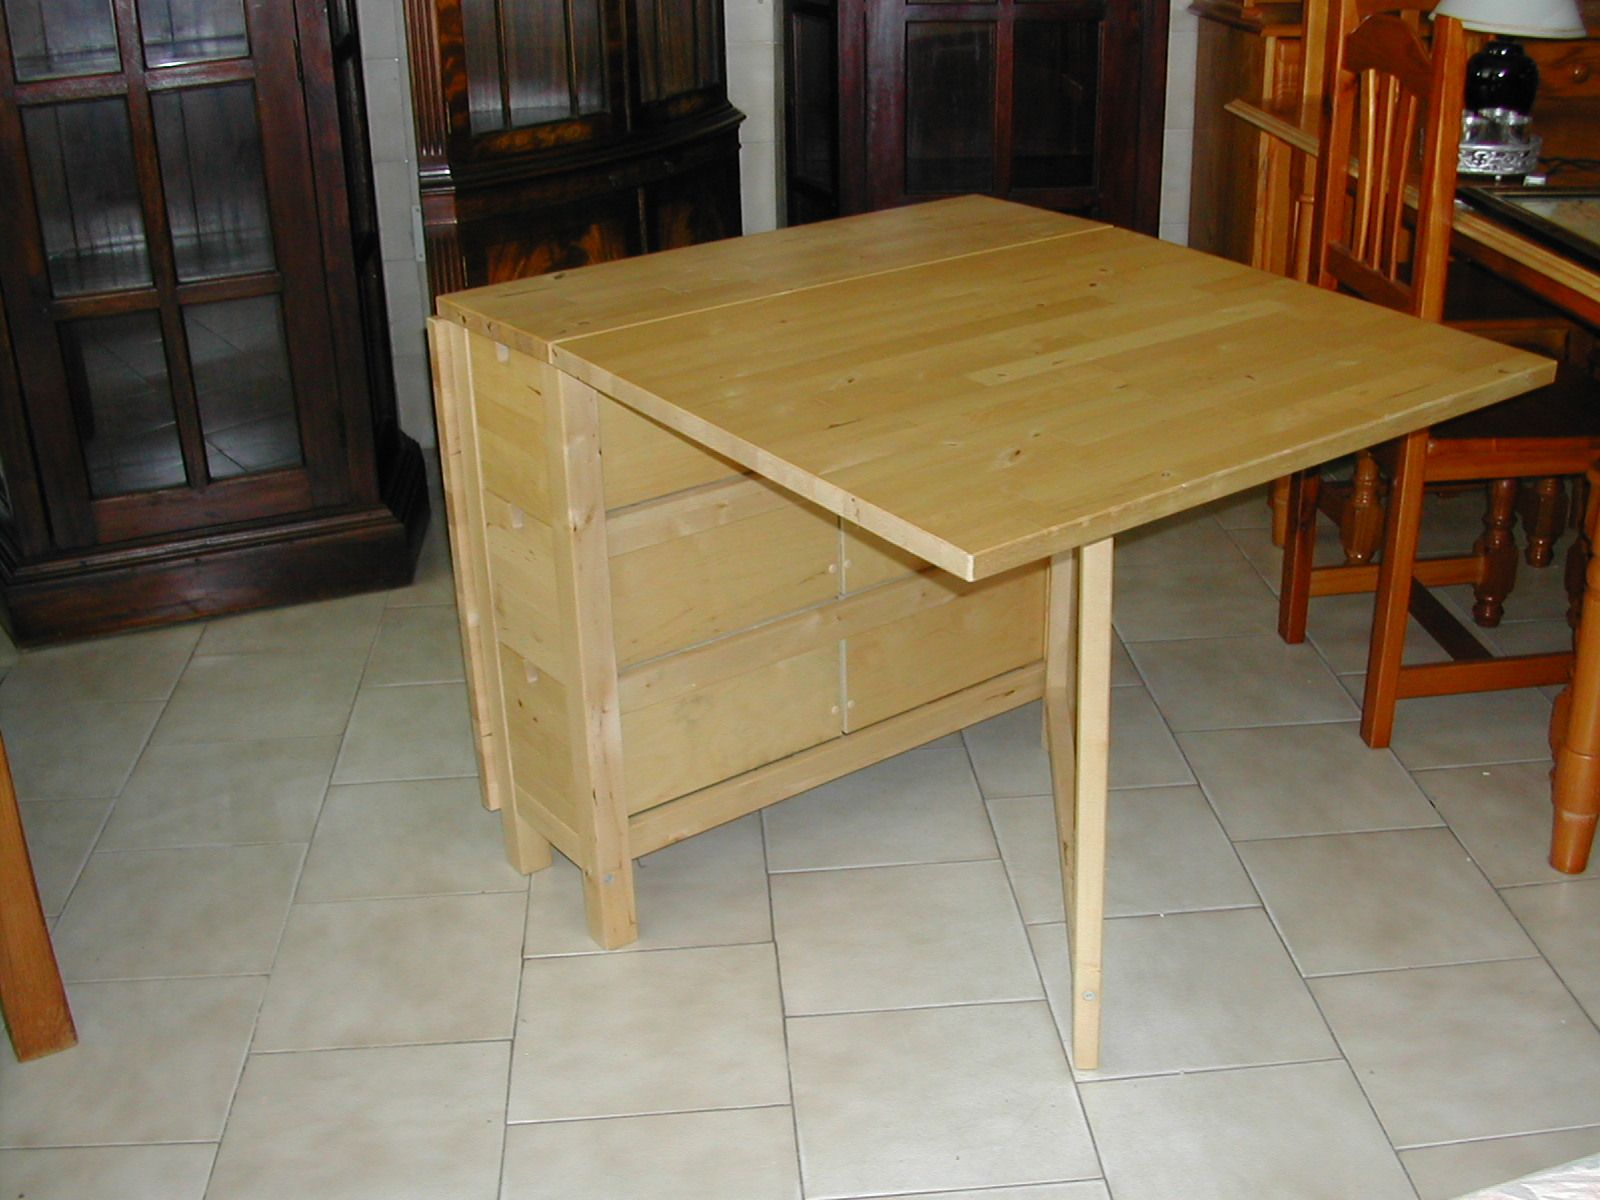 Useful Folding Ikea Table I Want To Convert My Existing Dining